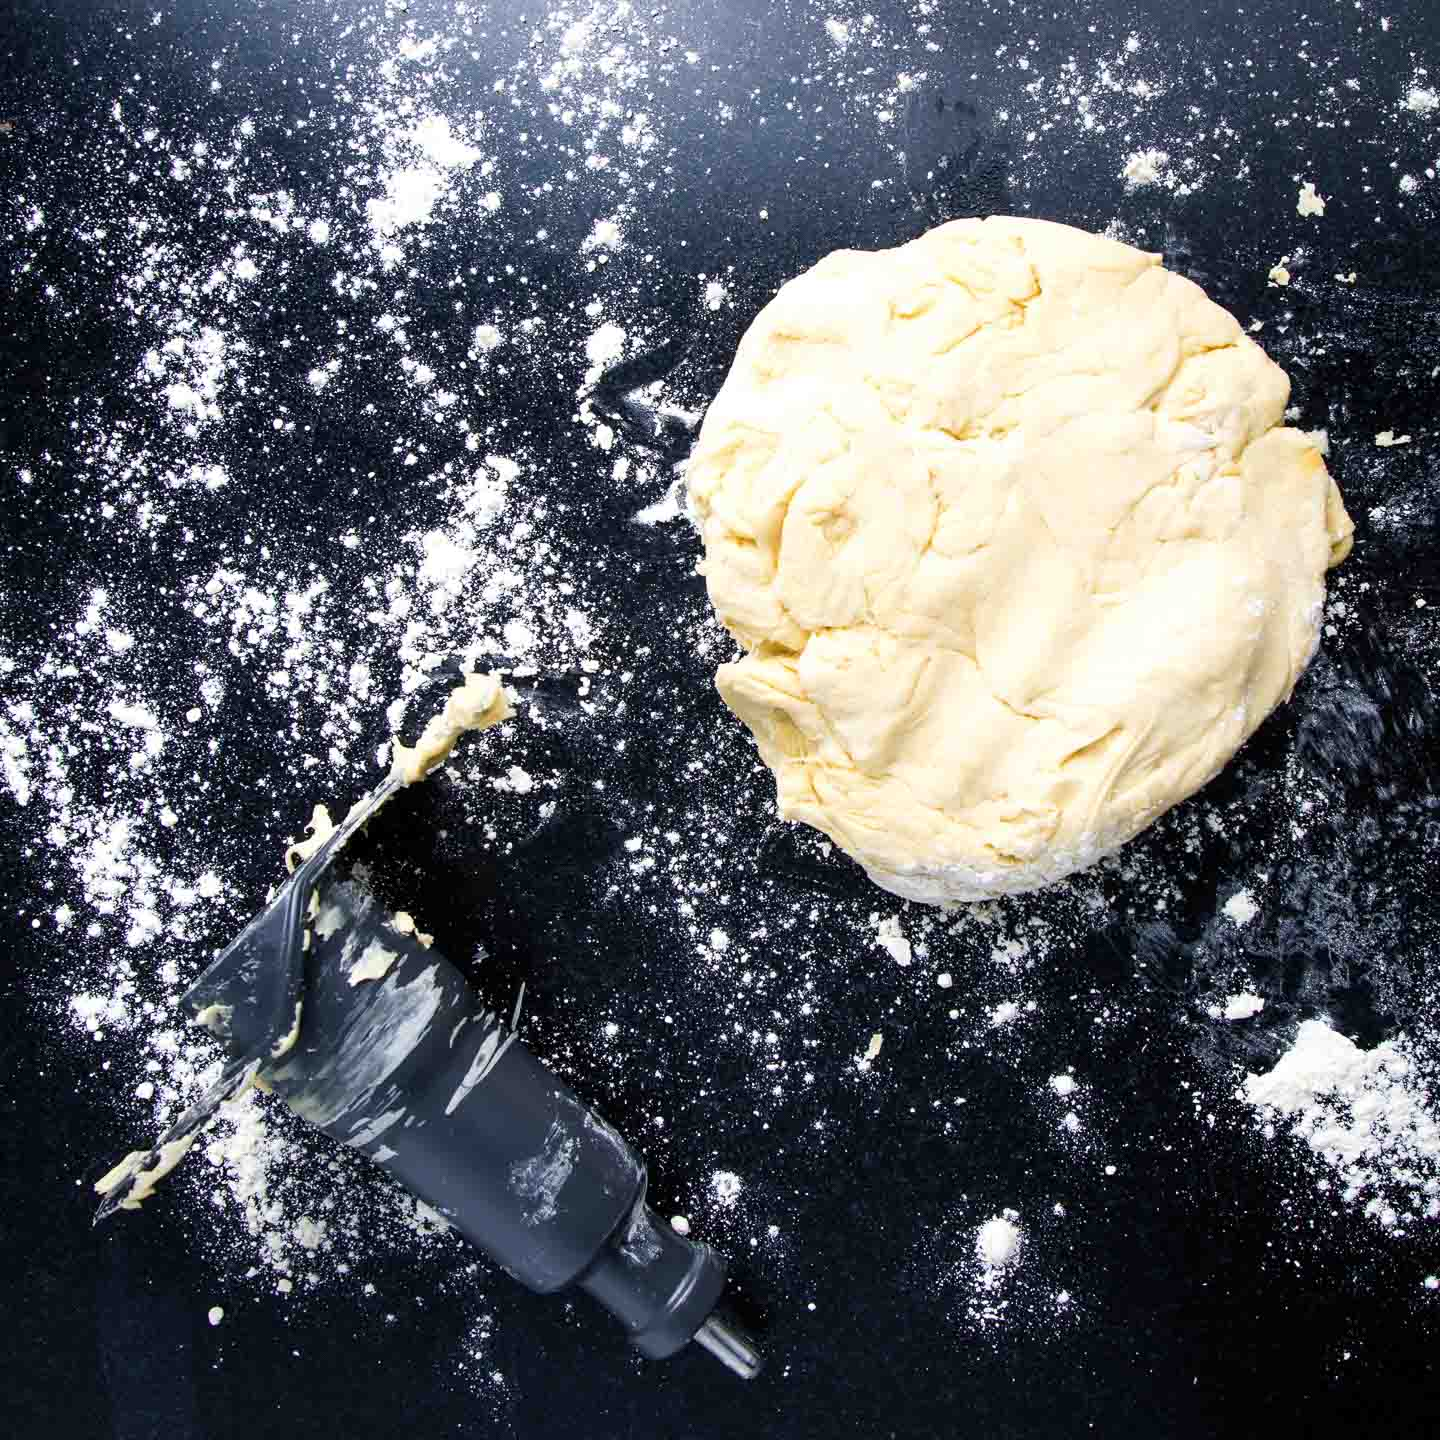 Ball of dough on a black surface sprinkled with flour and the food processor blade.